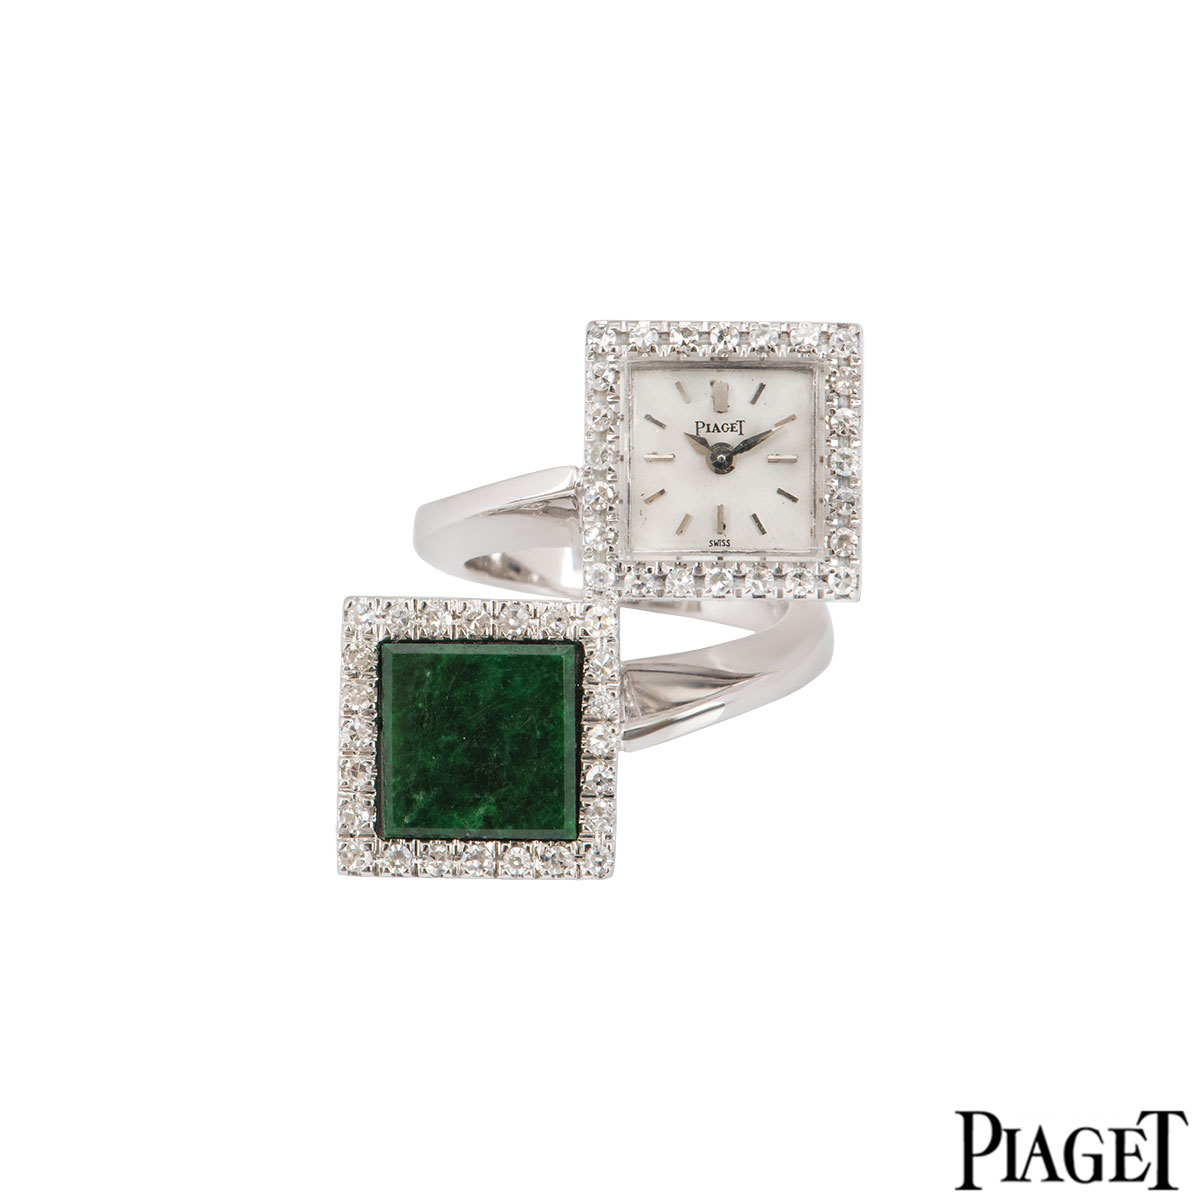 Piaget Platinum Diamond Ring Watch